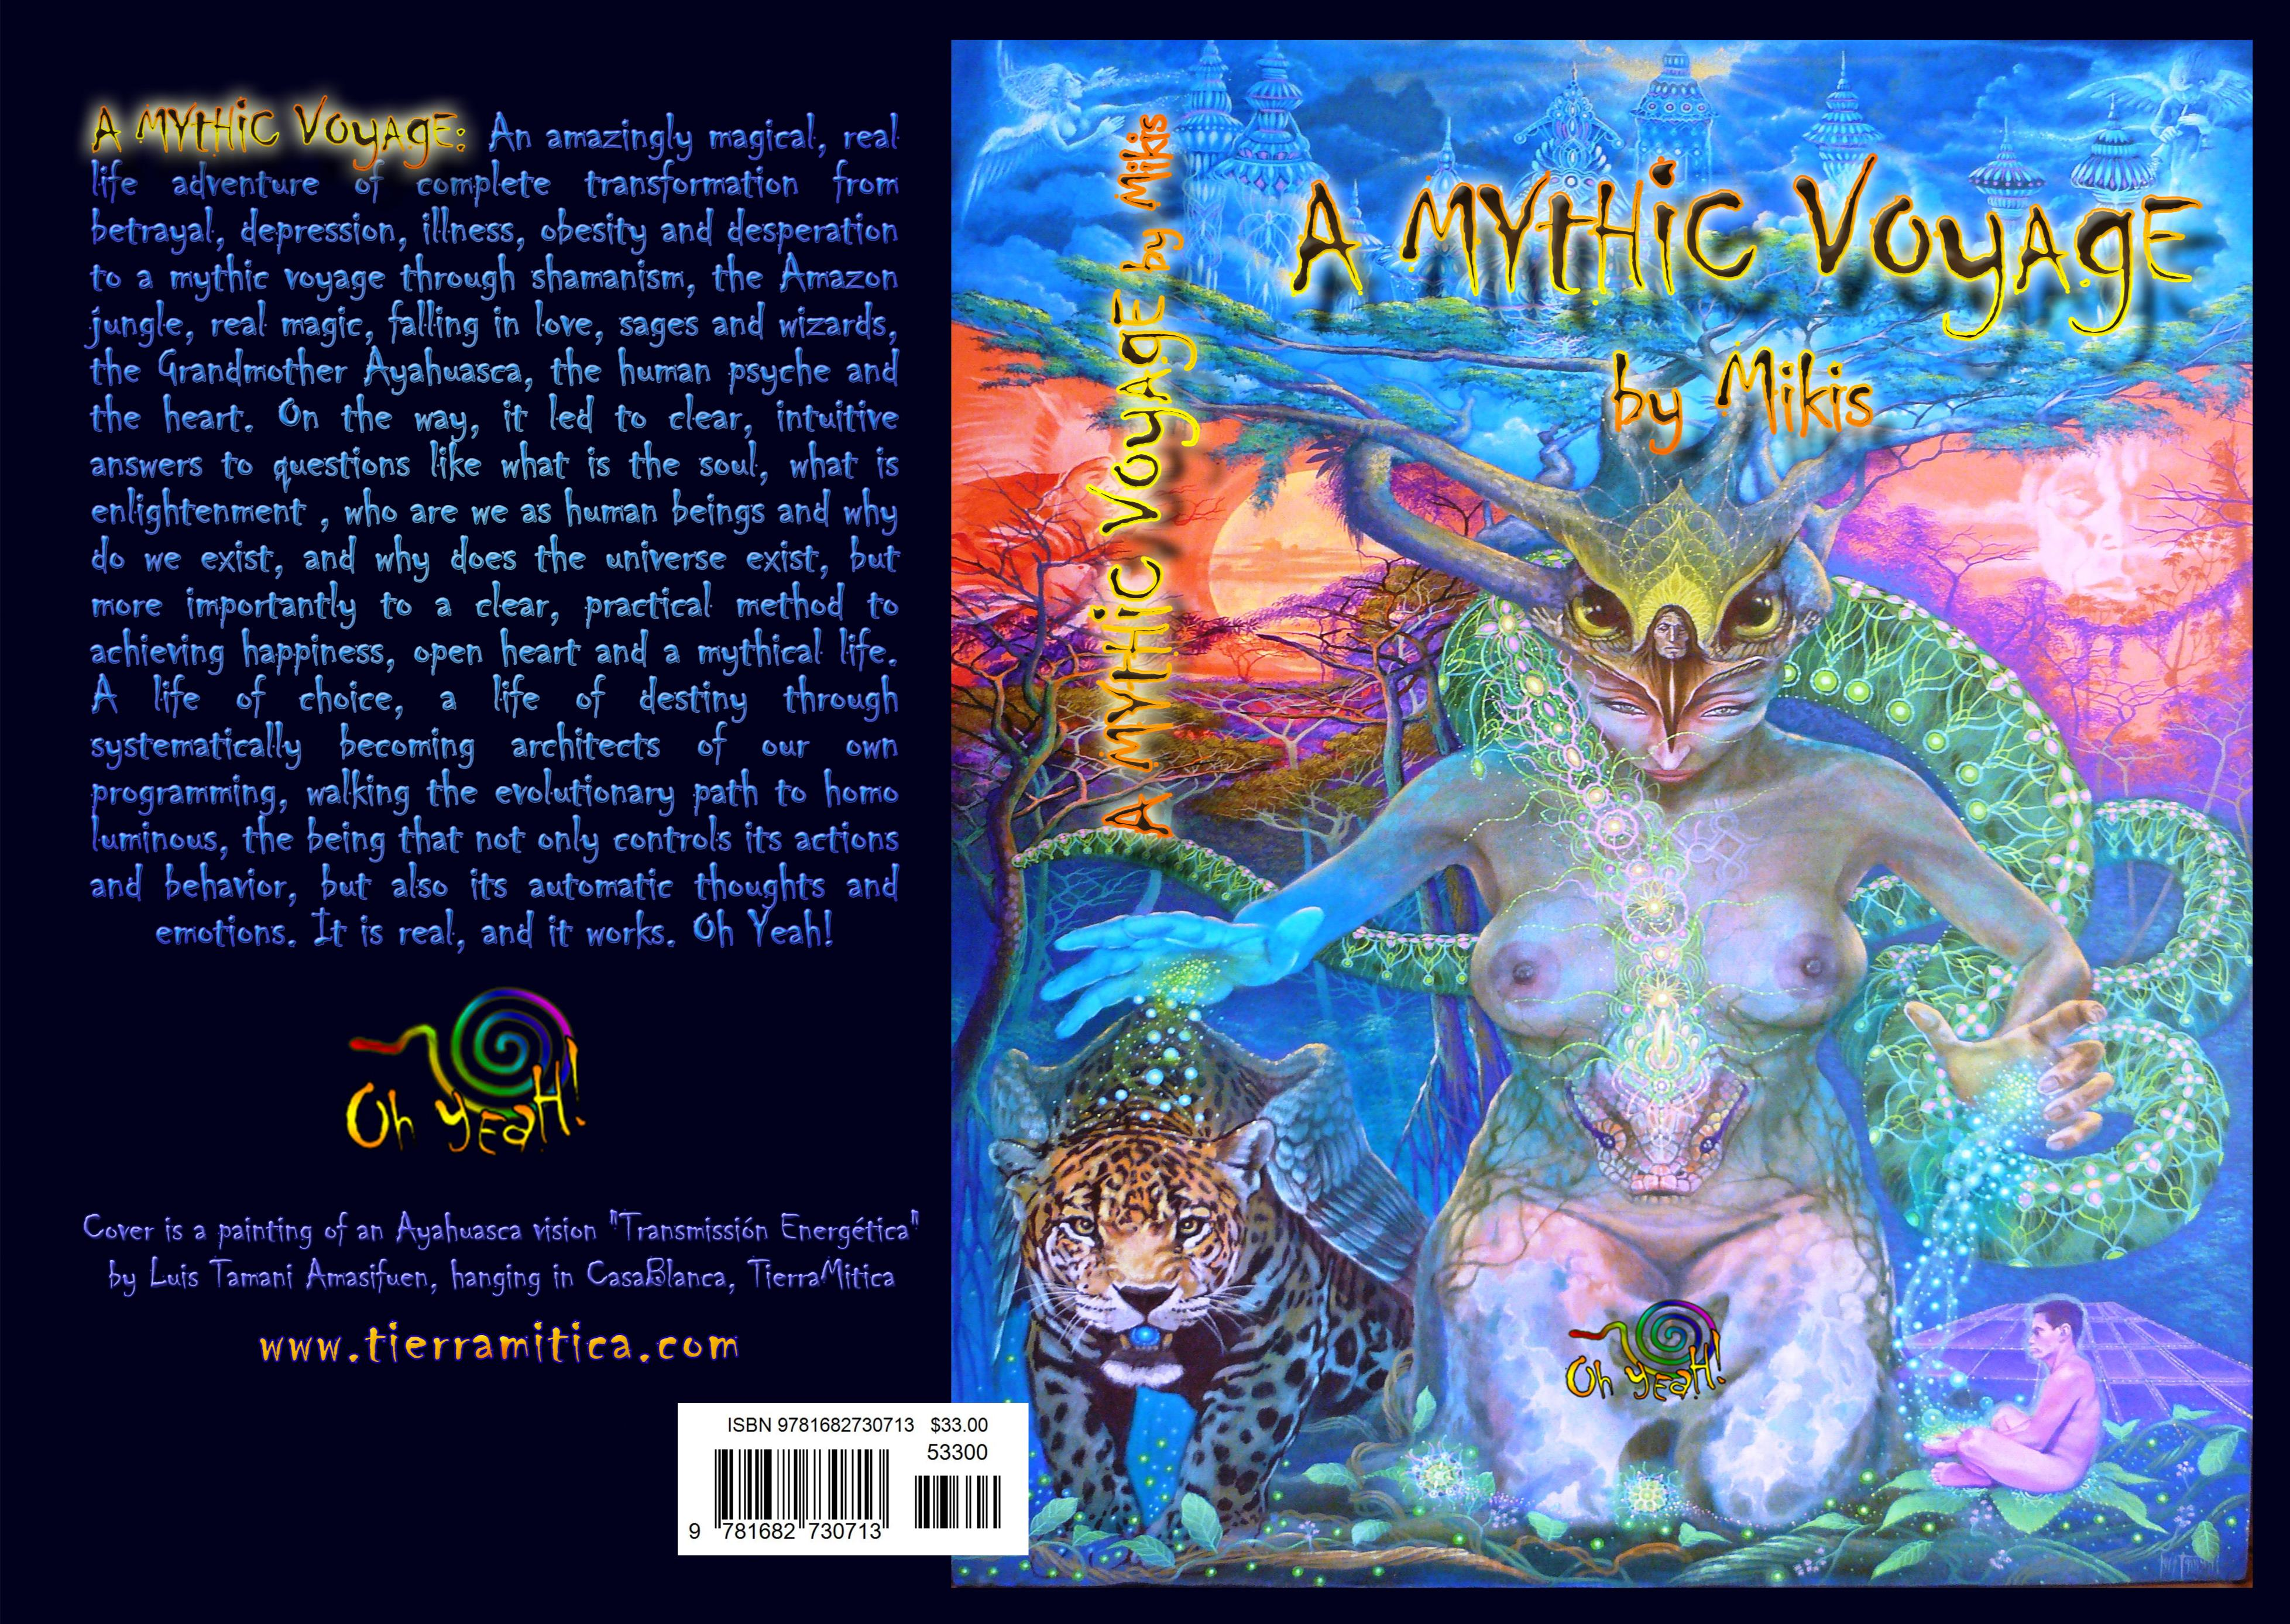 A MYTHIC VOYAGE cover image